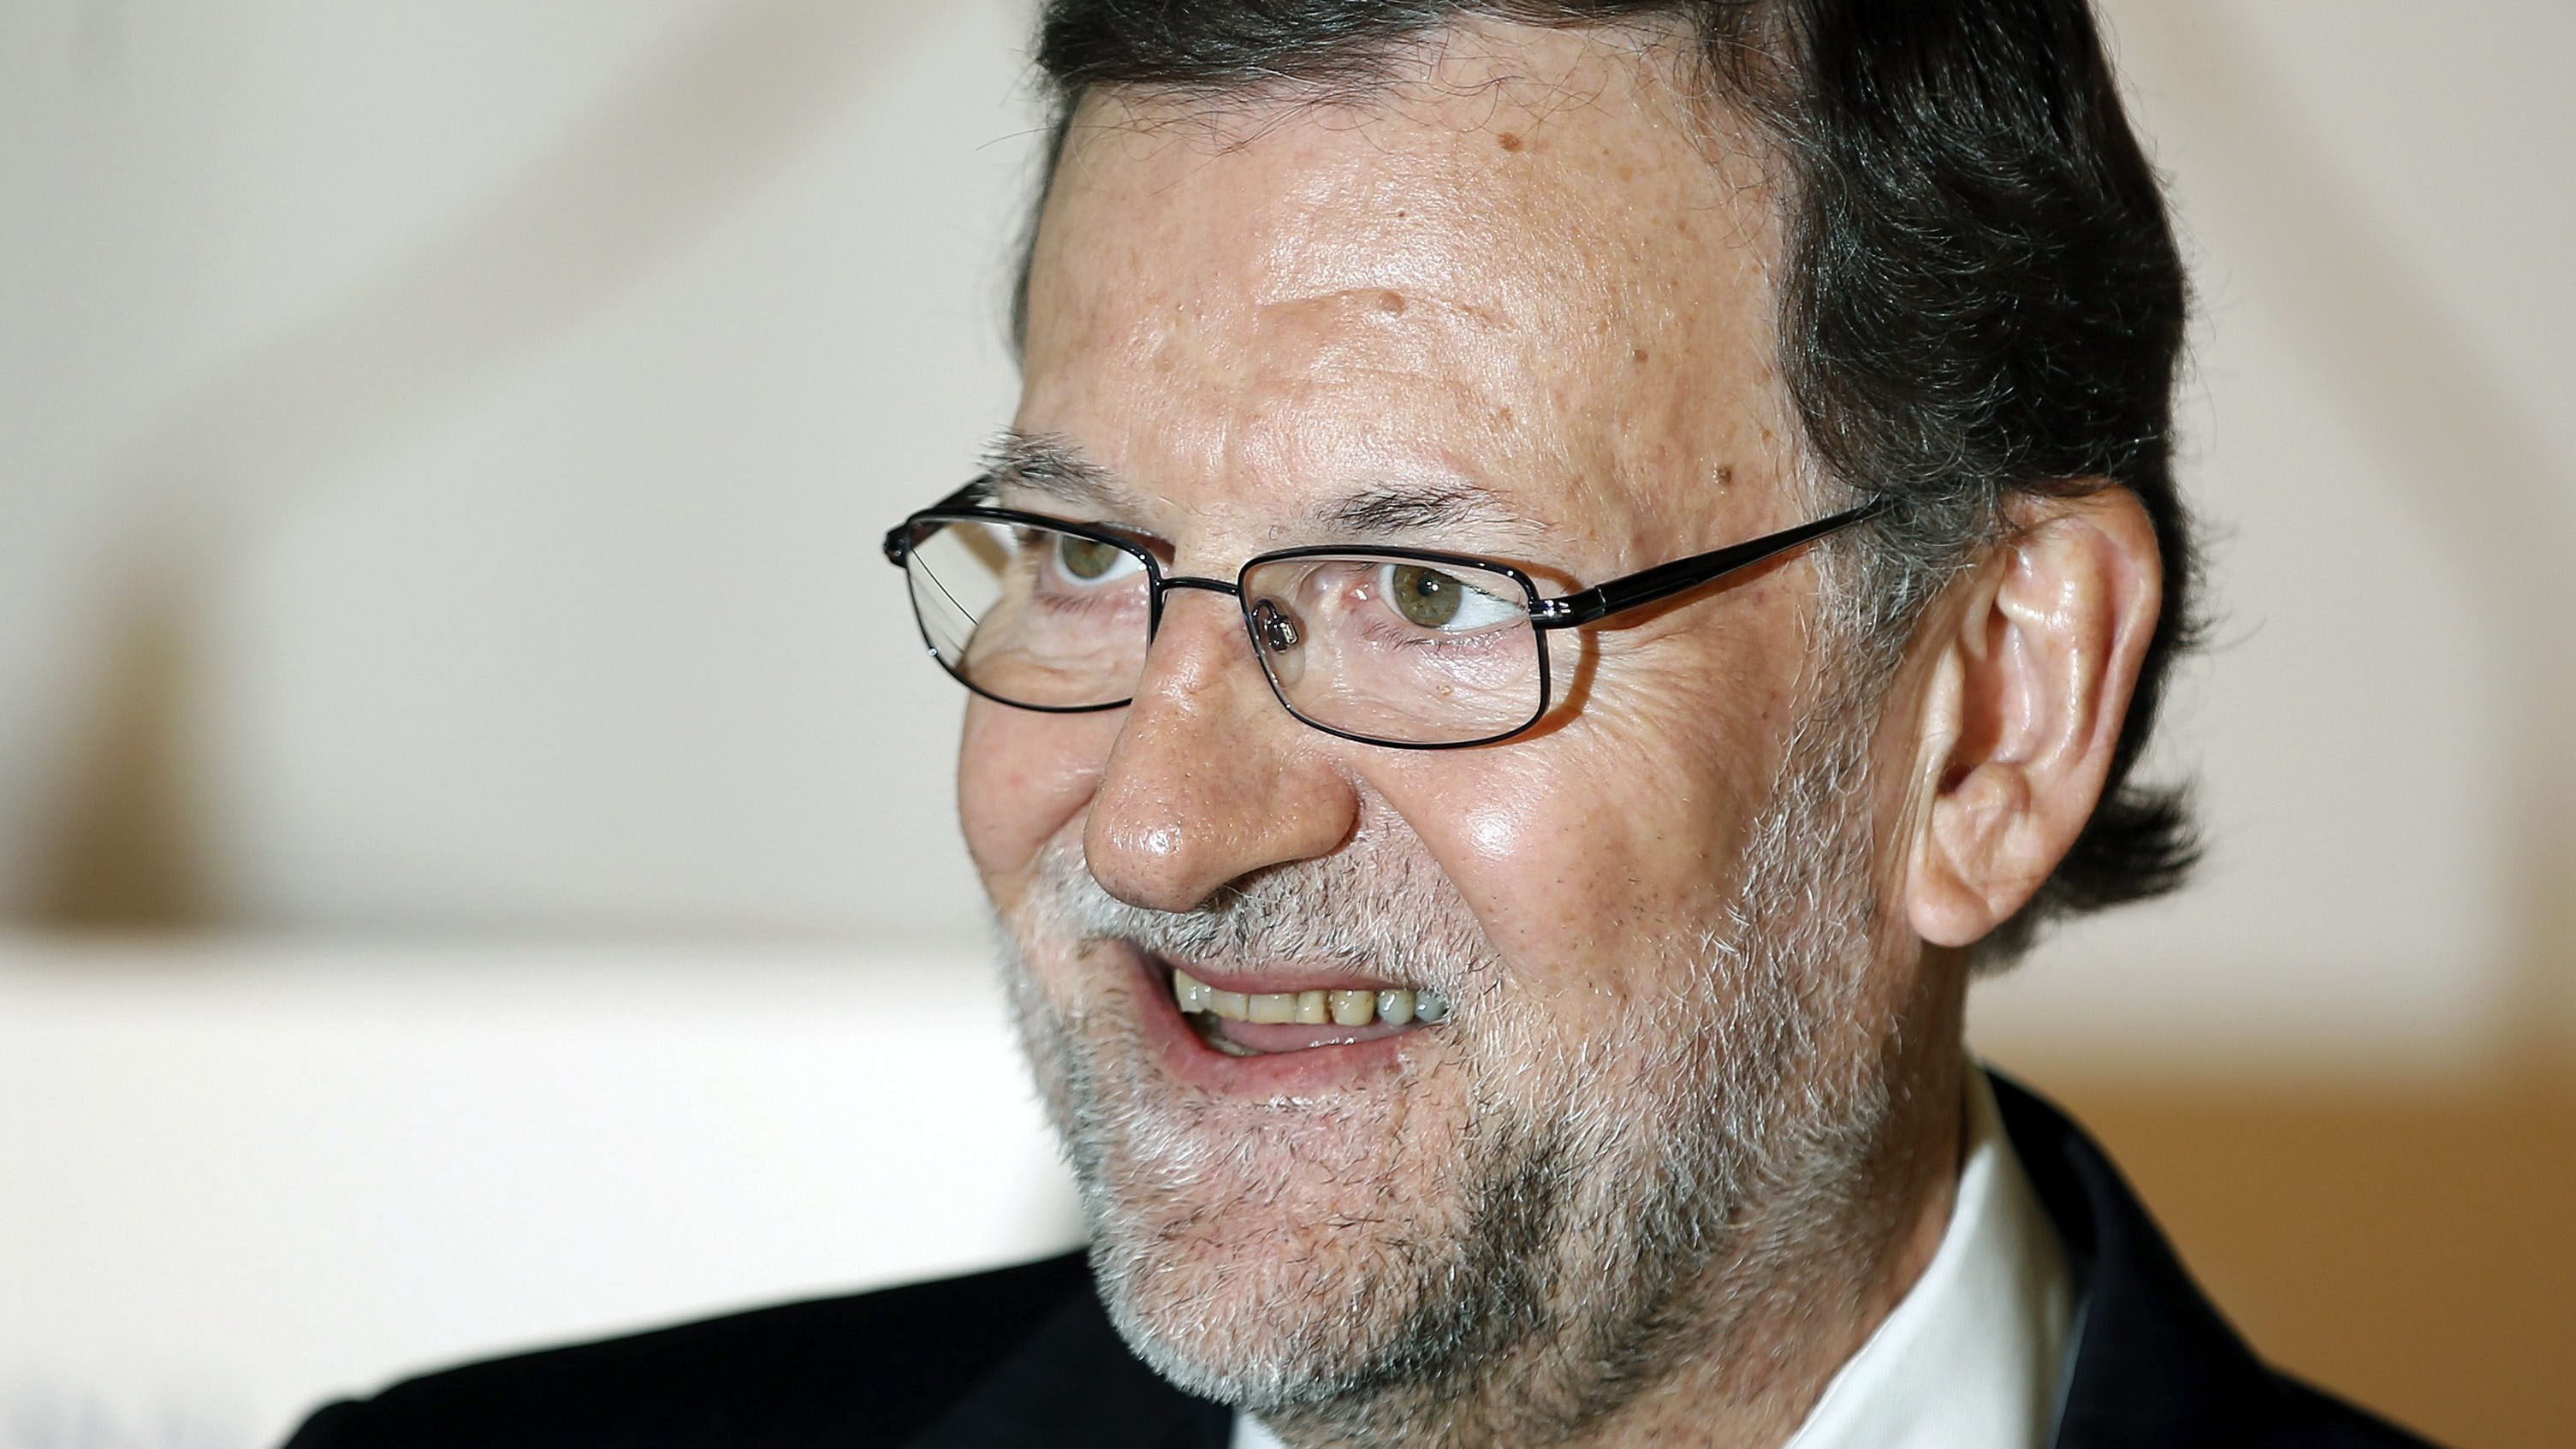 Rajoy makes his first public appearance the day after he was attacked. (AAP)